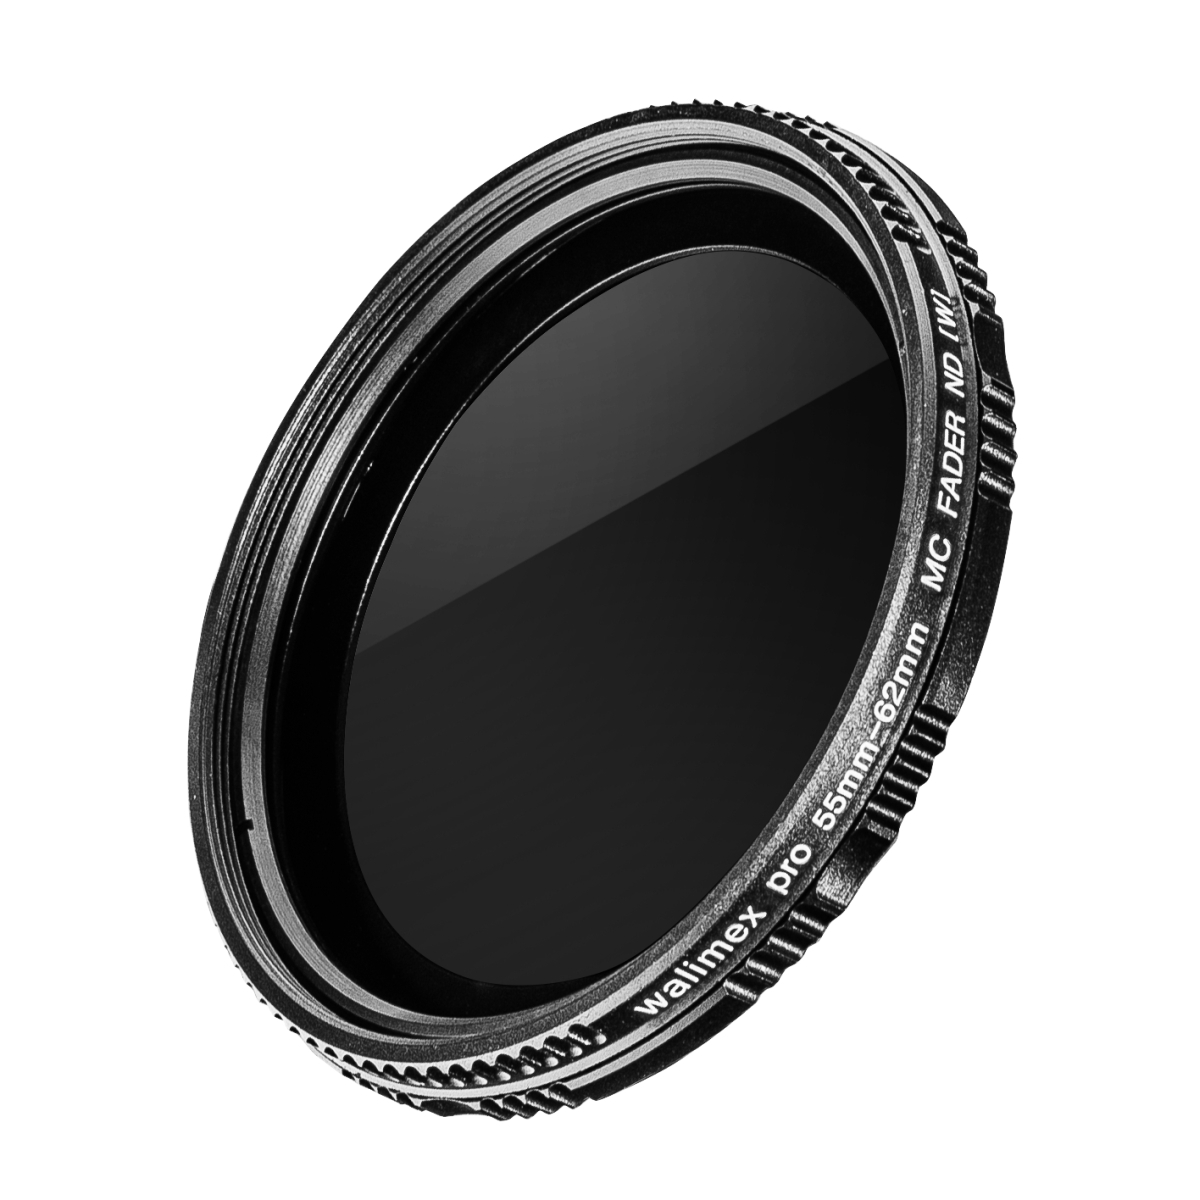 Walimex pro ND-Fader coated 55 mm ND2 - ND400